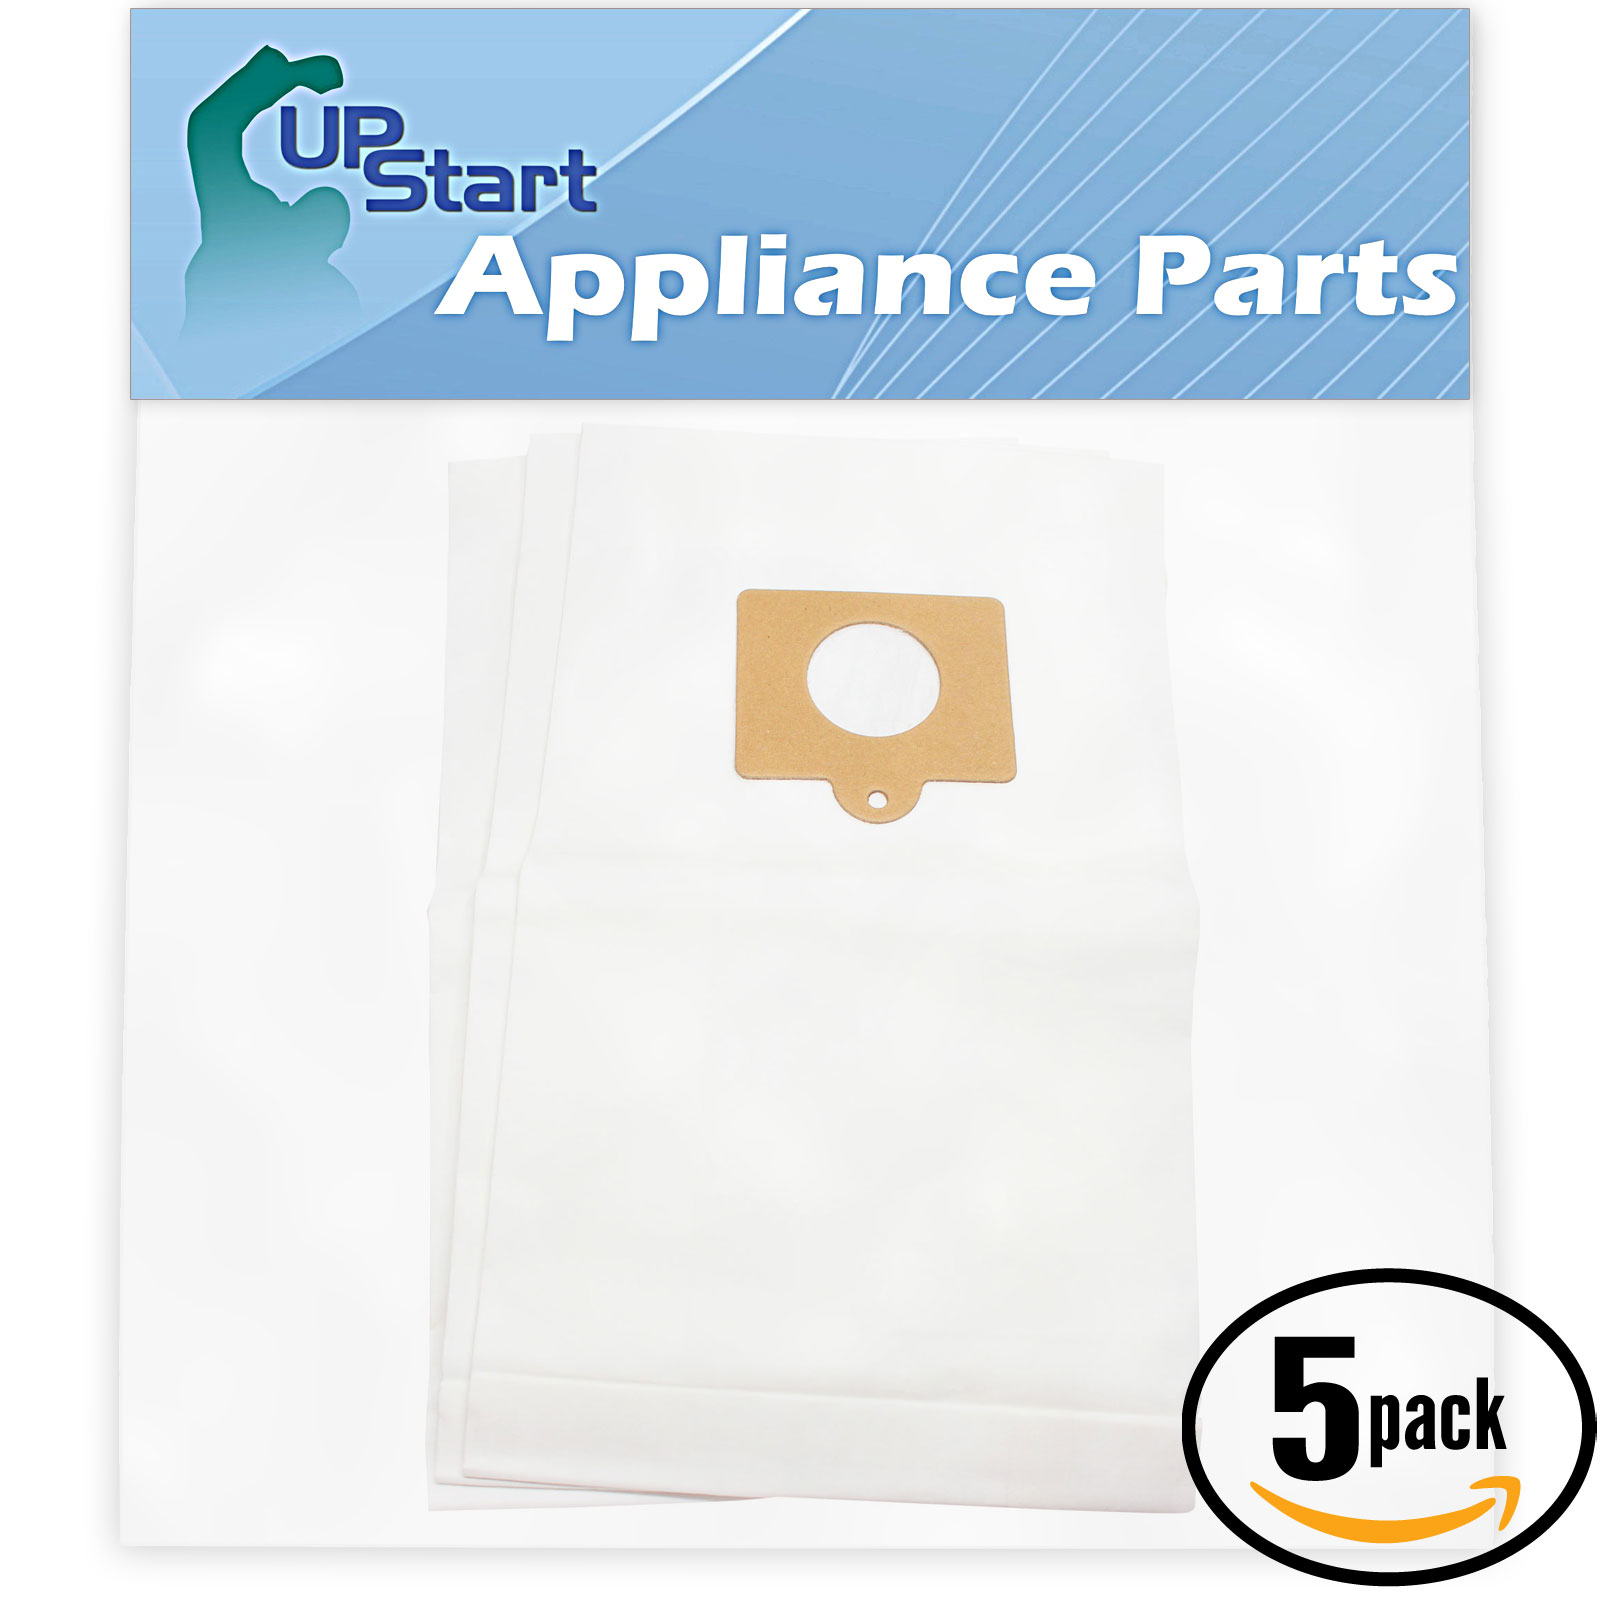 15 Replacement Kenmore 20-50555 Vacuum Bags  - Compatible Kenmore 50558, 5055, 50557, Type C Vacuum Bags (5-Pack, 3 Bags Per Pack)